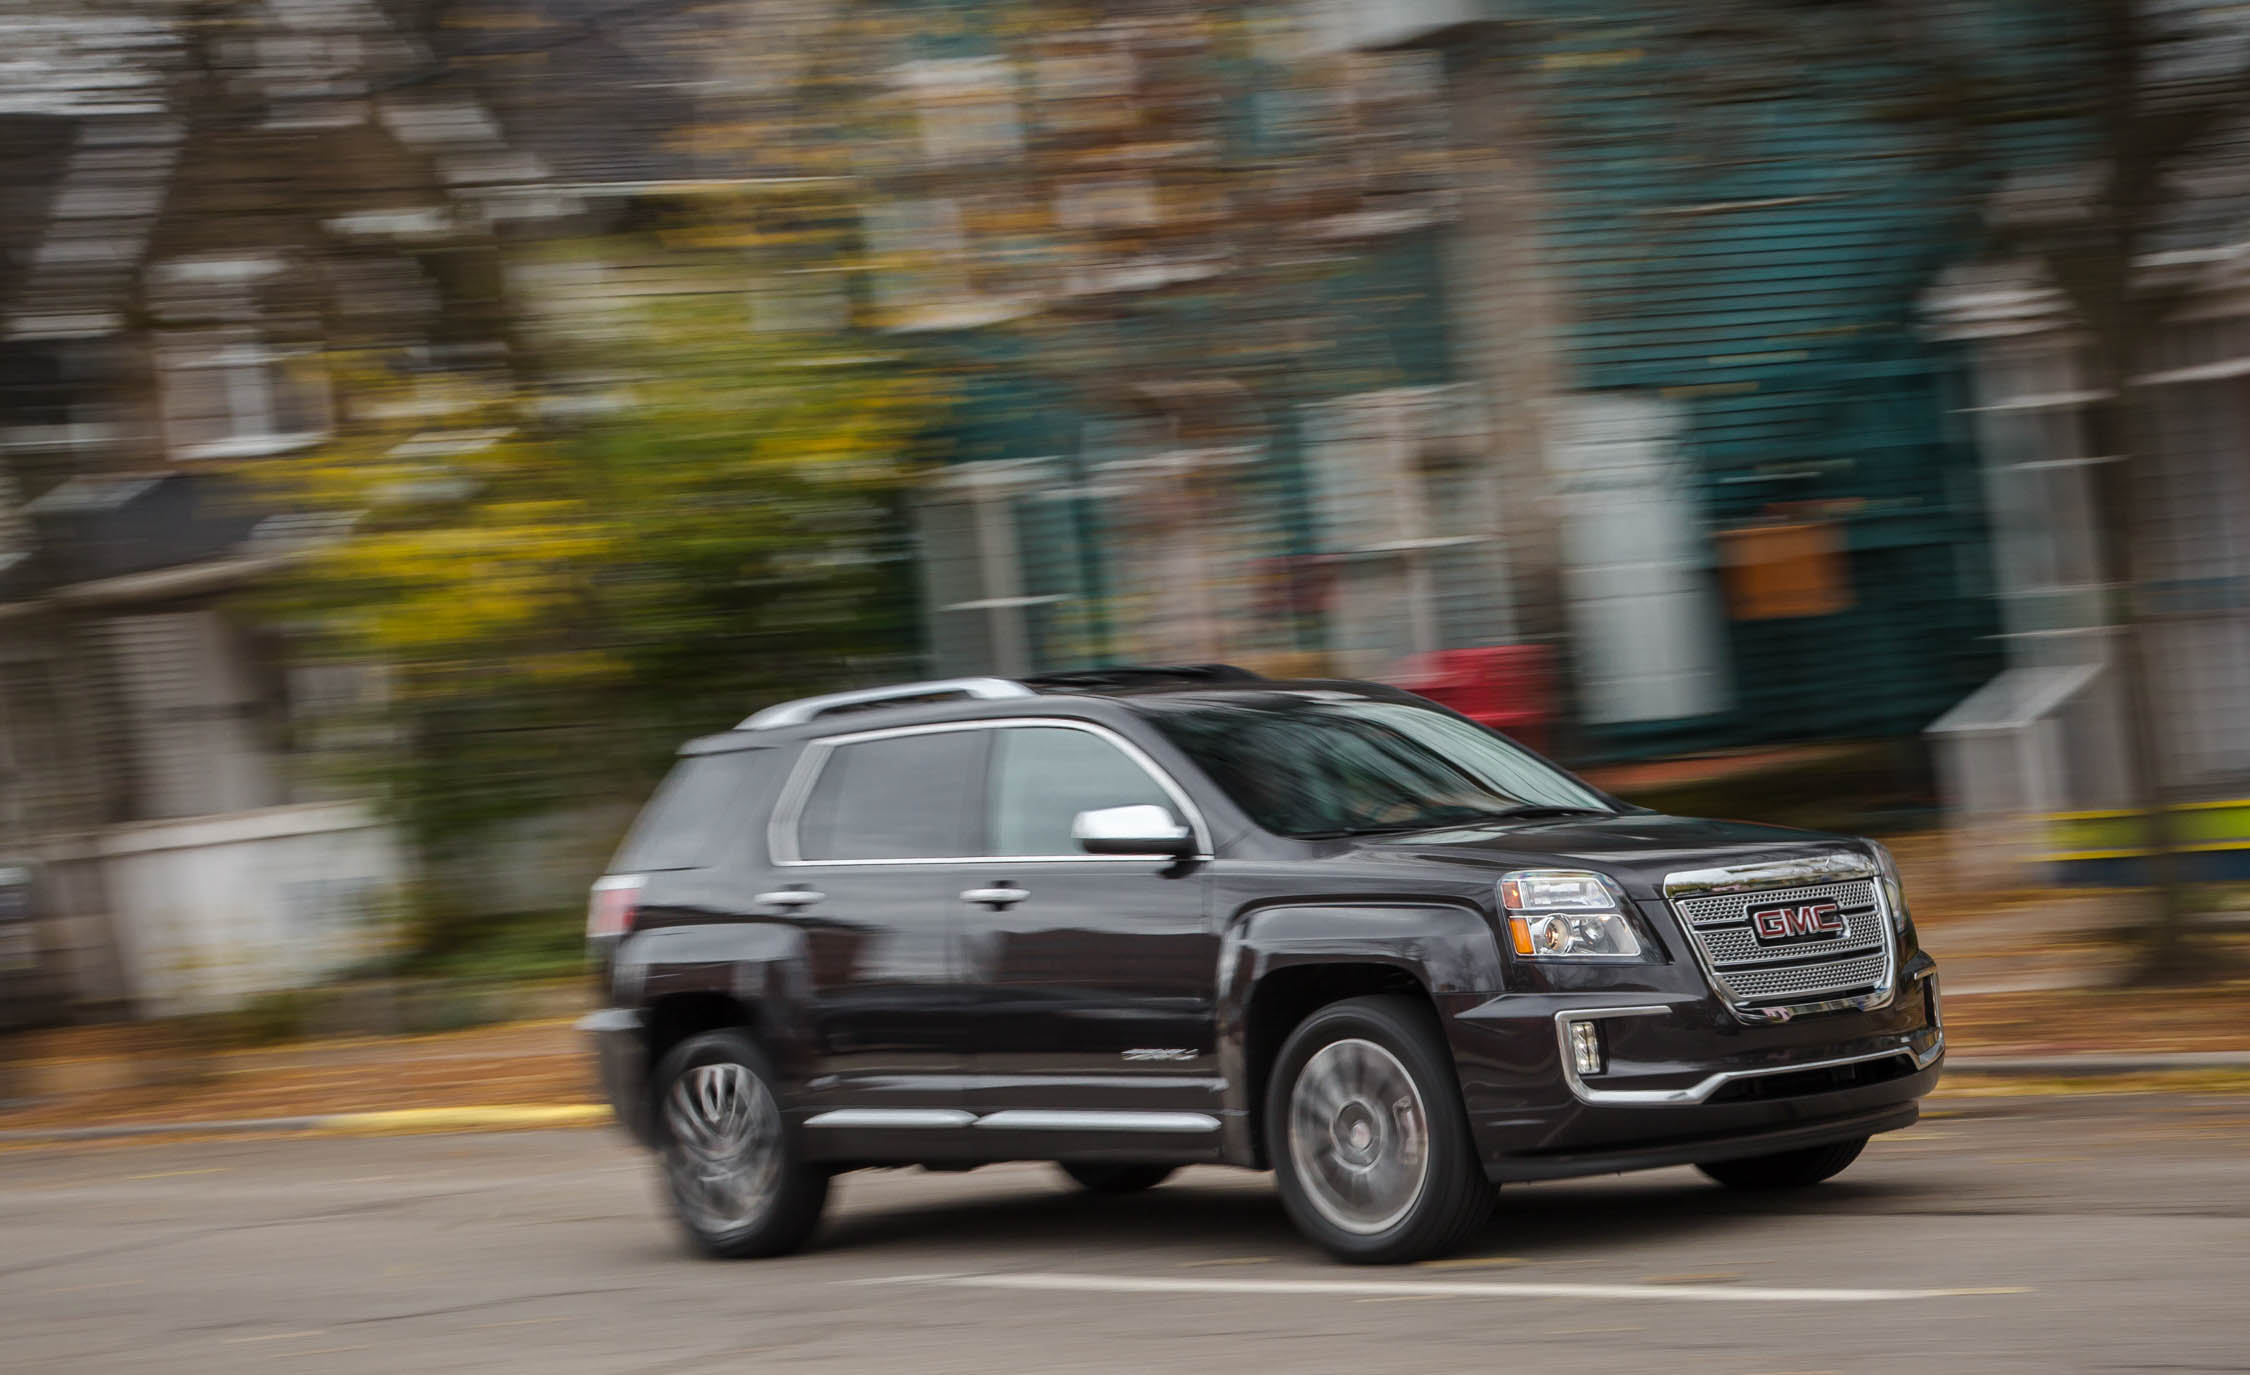 2016 GMC Terrain Pictures Gallery (24 Images)